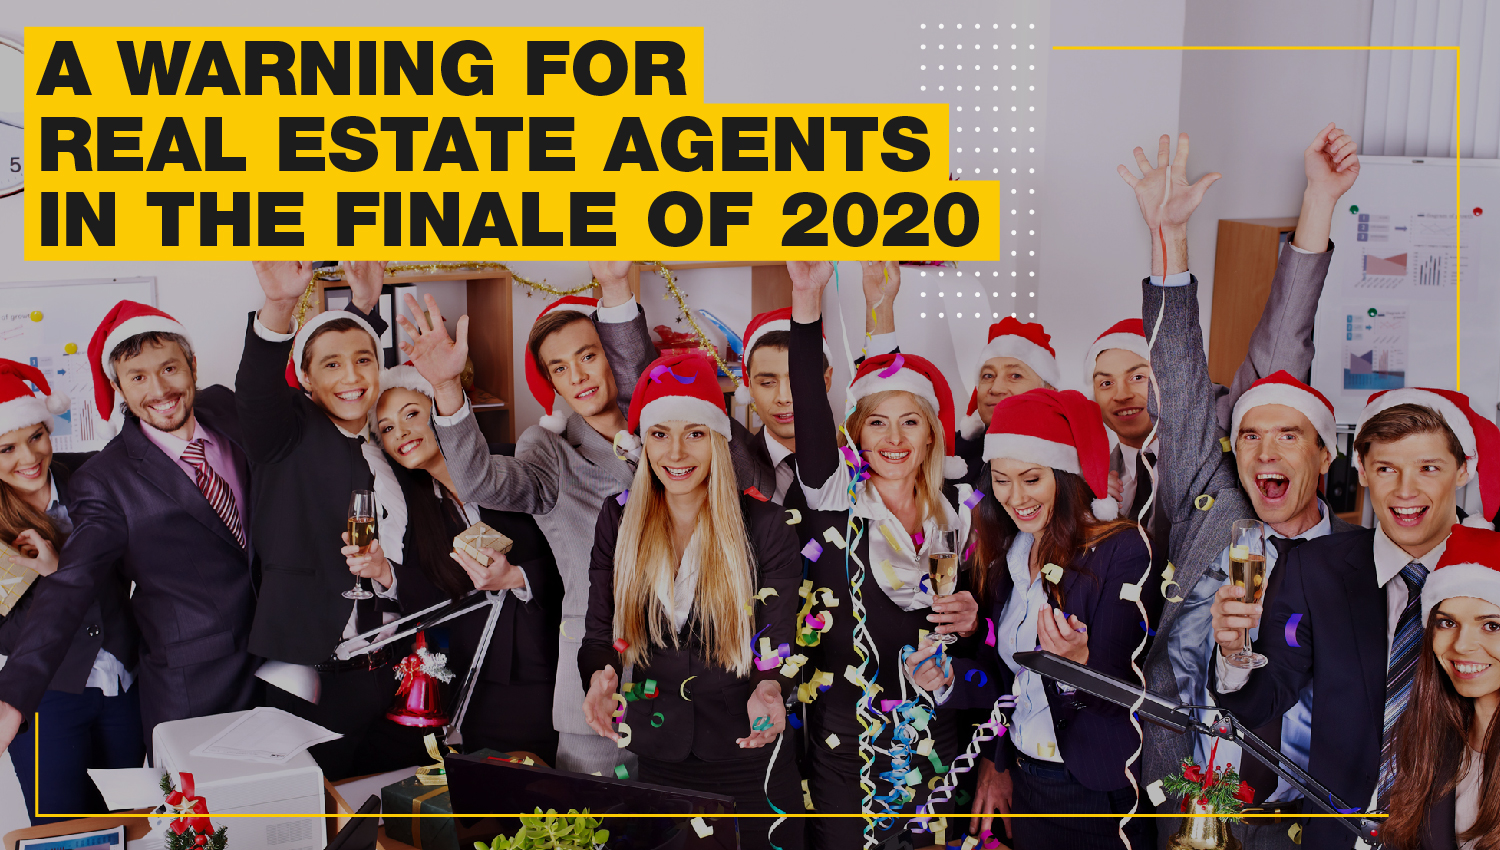 headline: A warning for the real estate agents in the finale of 2020